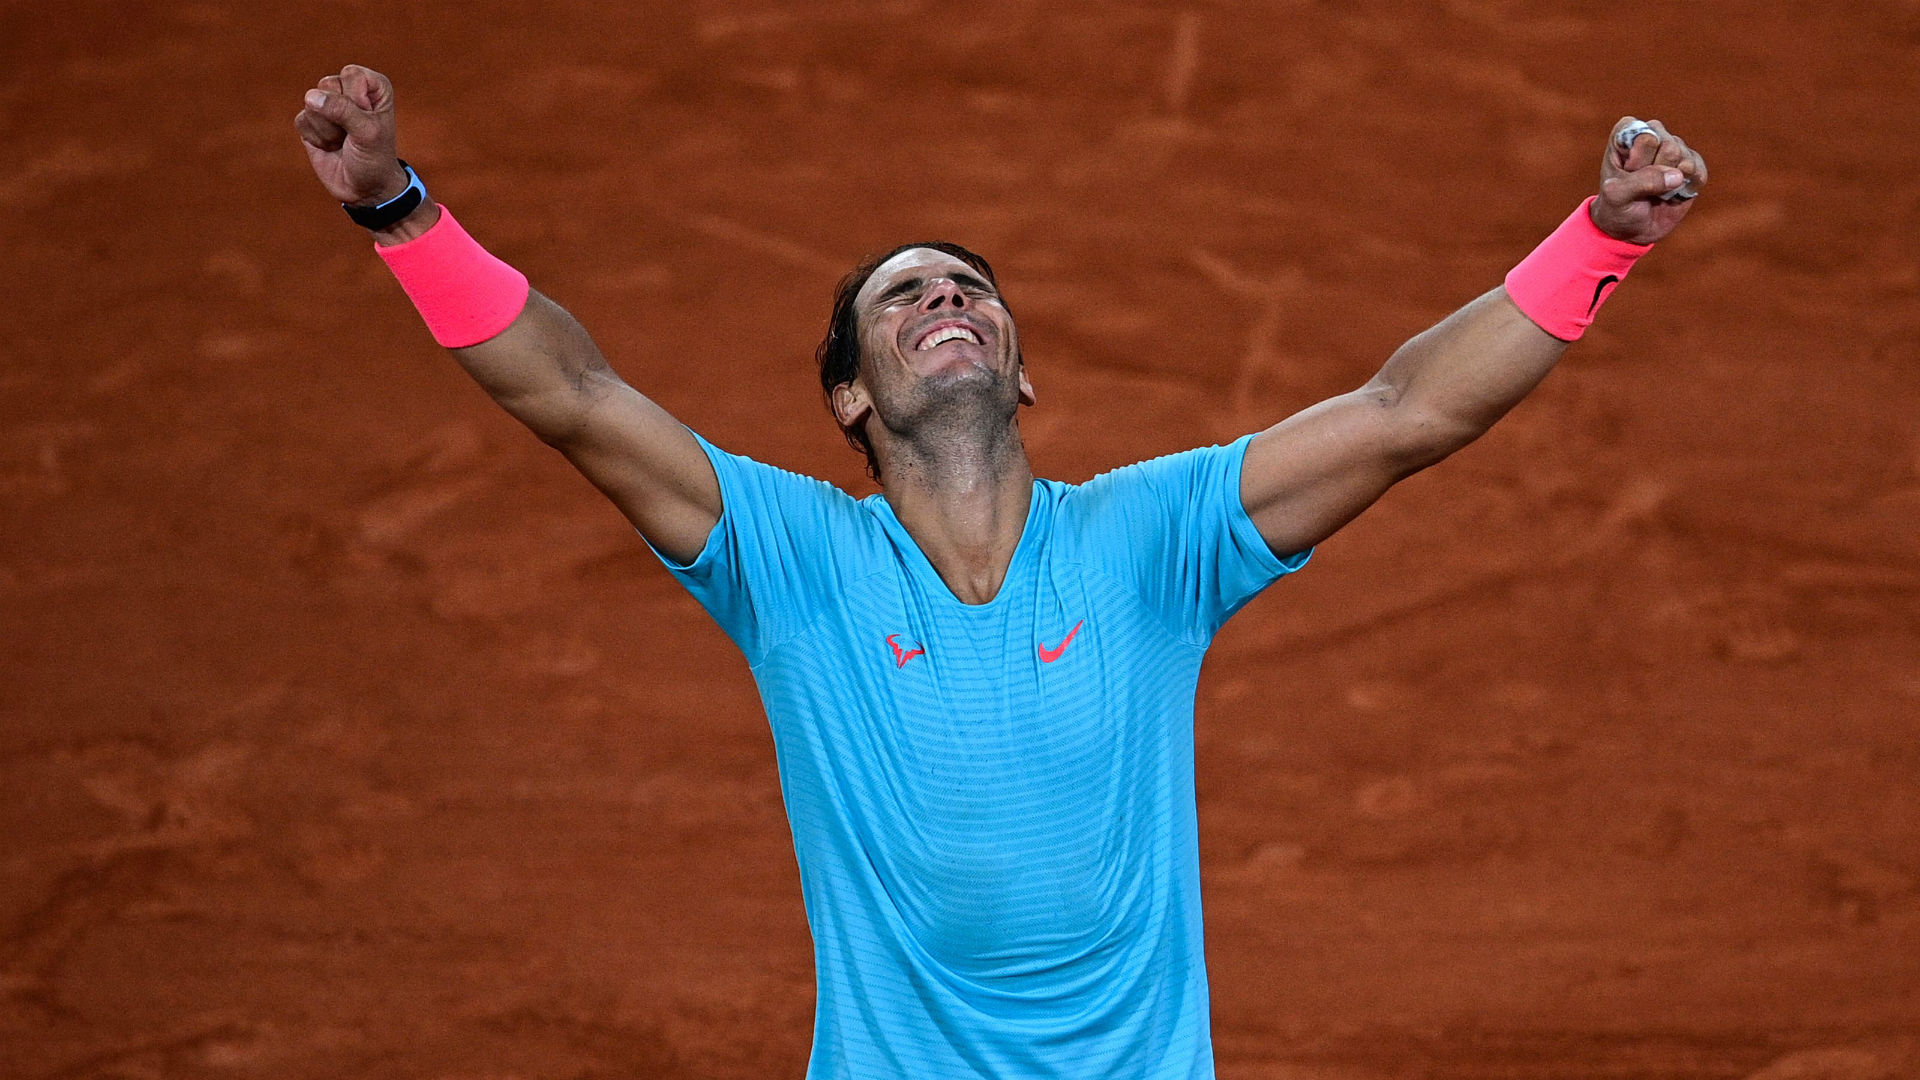 French Open 2020: Nadal matches Federer's grand slam record, scores 100th Roland Garros win